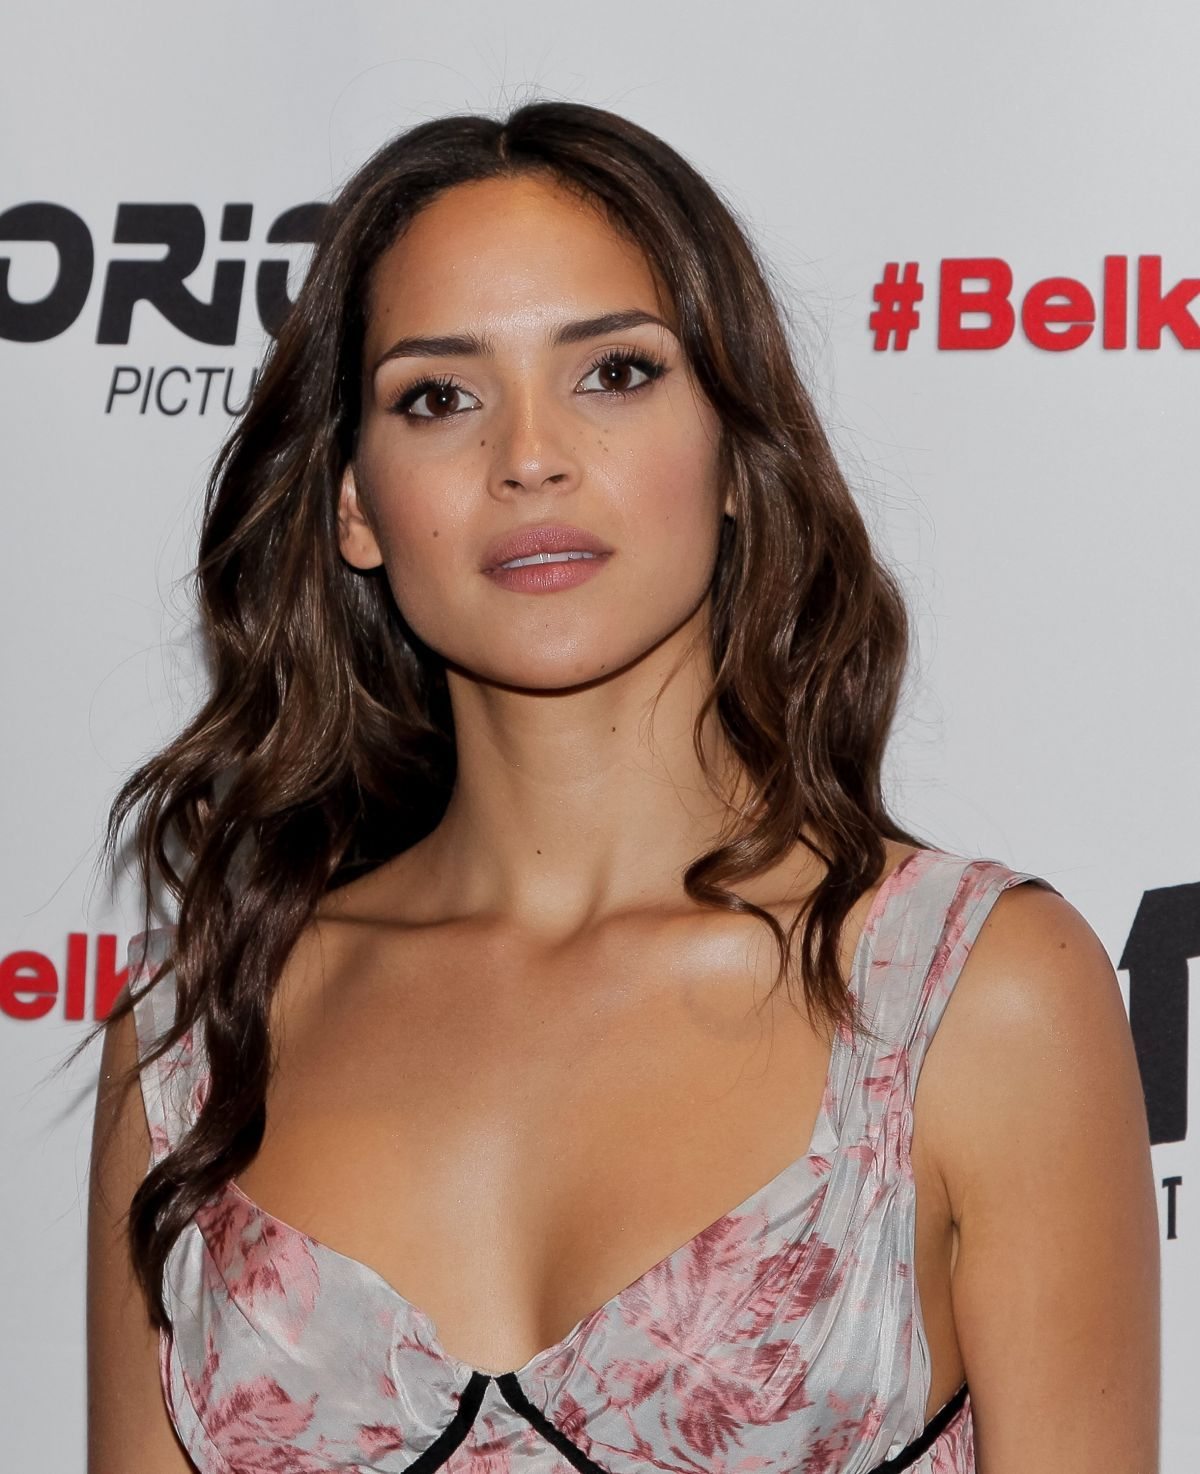 Pictures Adria Arjona nudes (86 photos), Ass, Hot, Selfie, swimsuit 2018